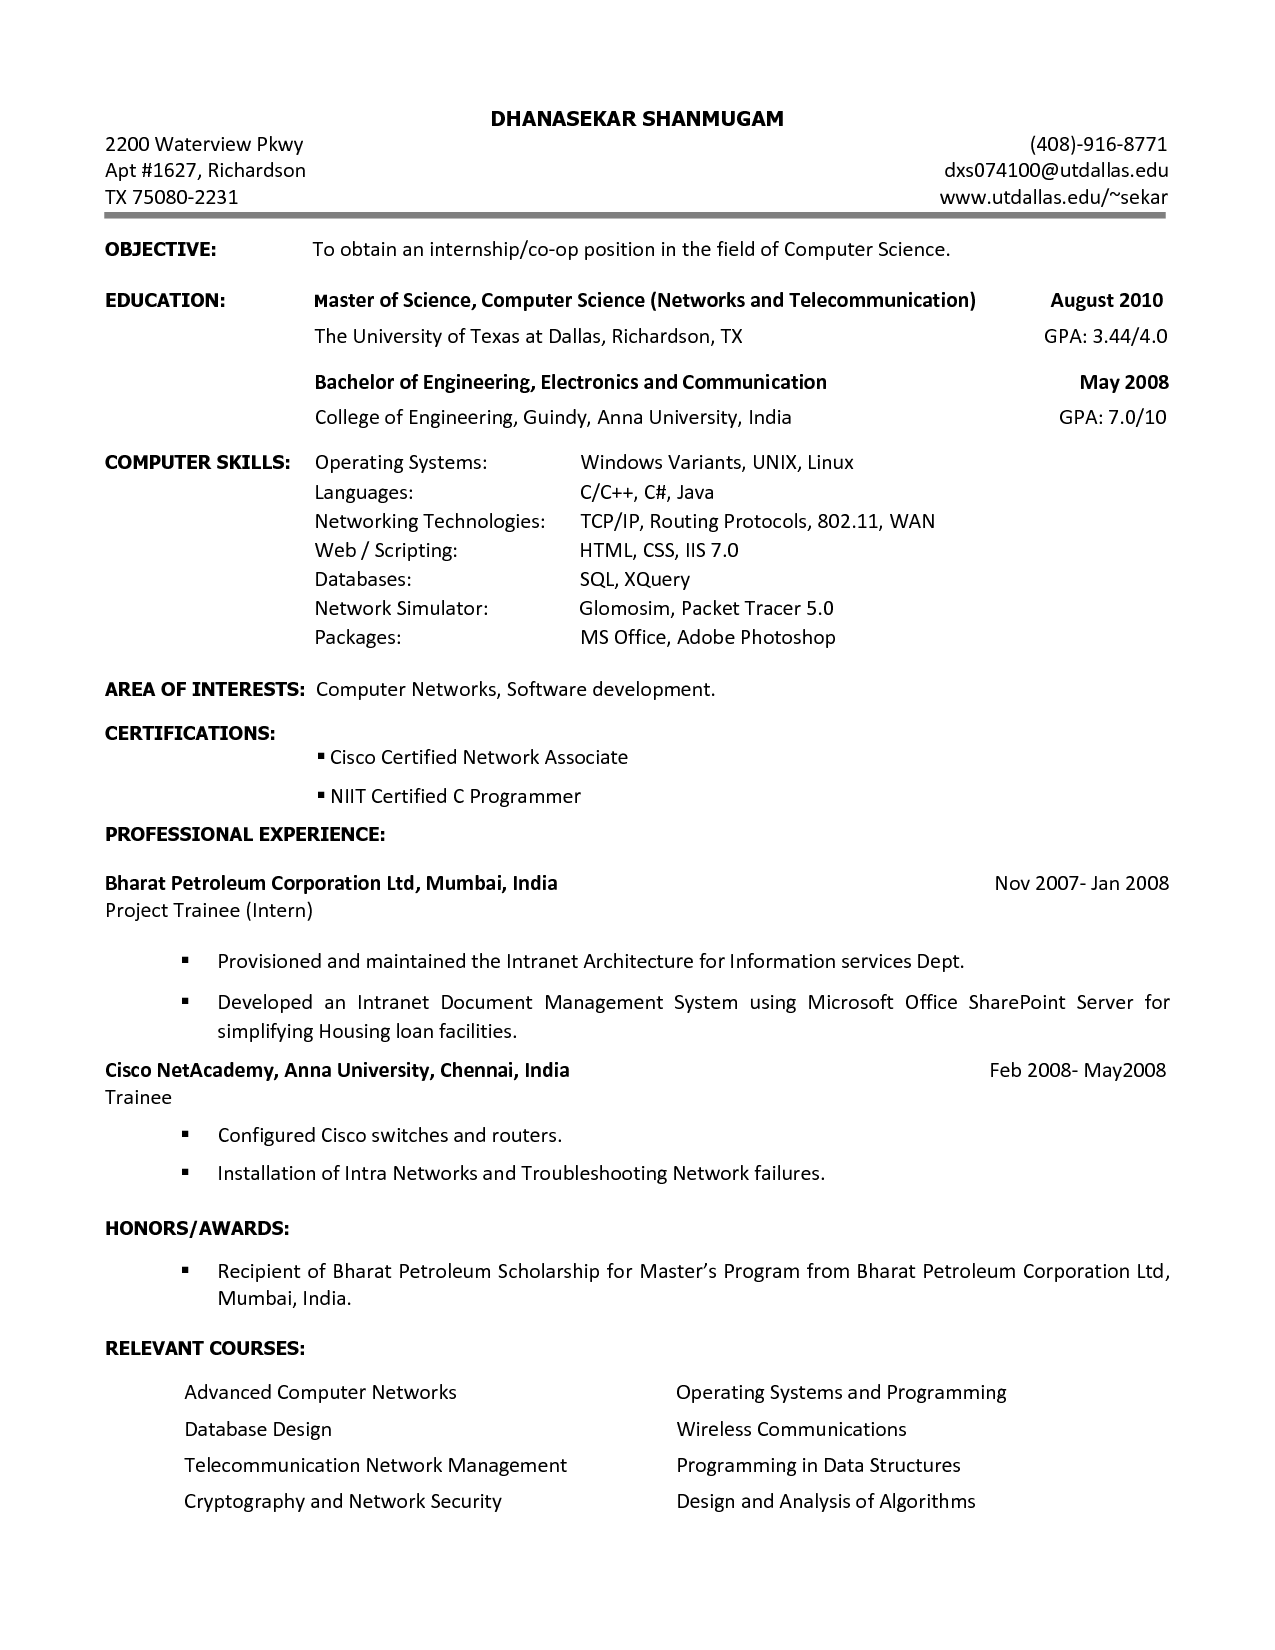 Resume Builder Resume Builder Free Download Free Resume Builder - Best-resume-maker